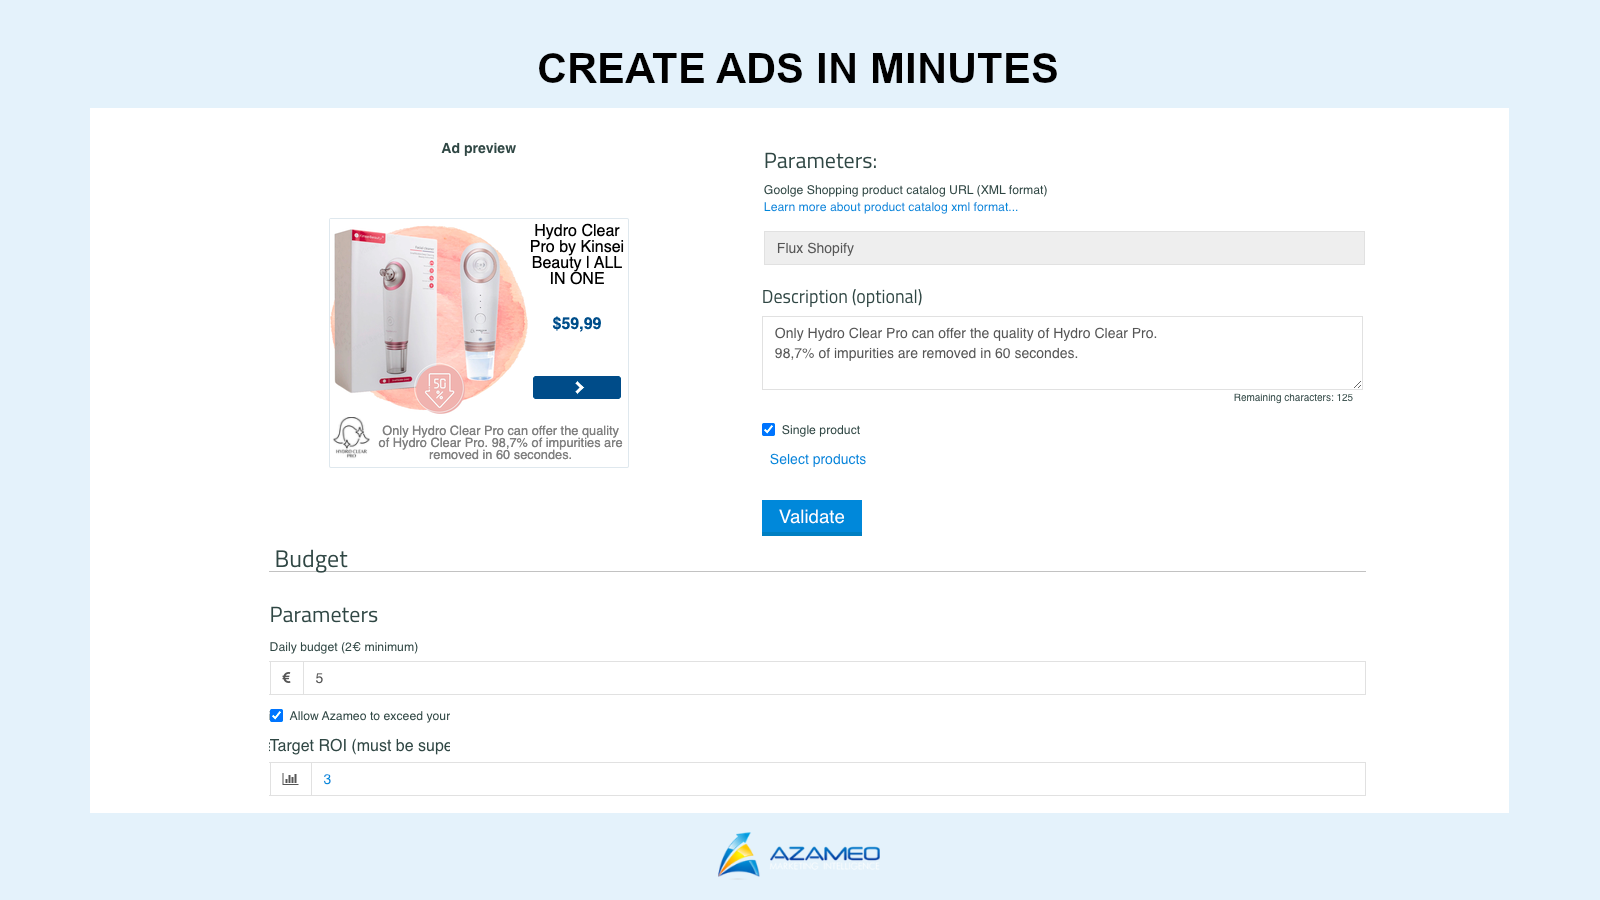 Set up high-converting ads in minutes